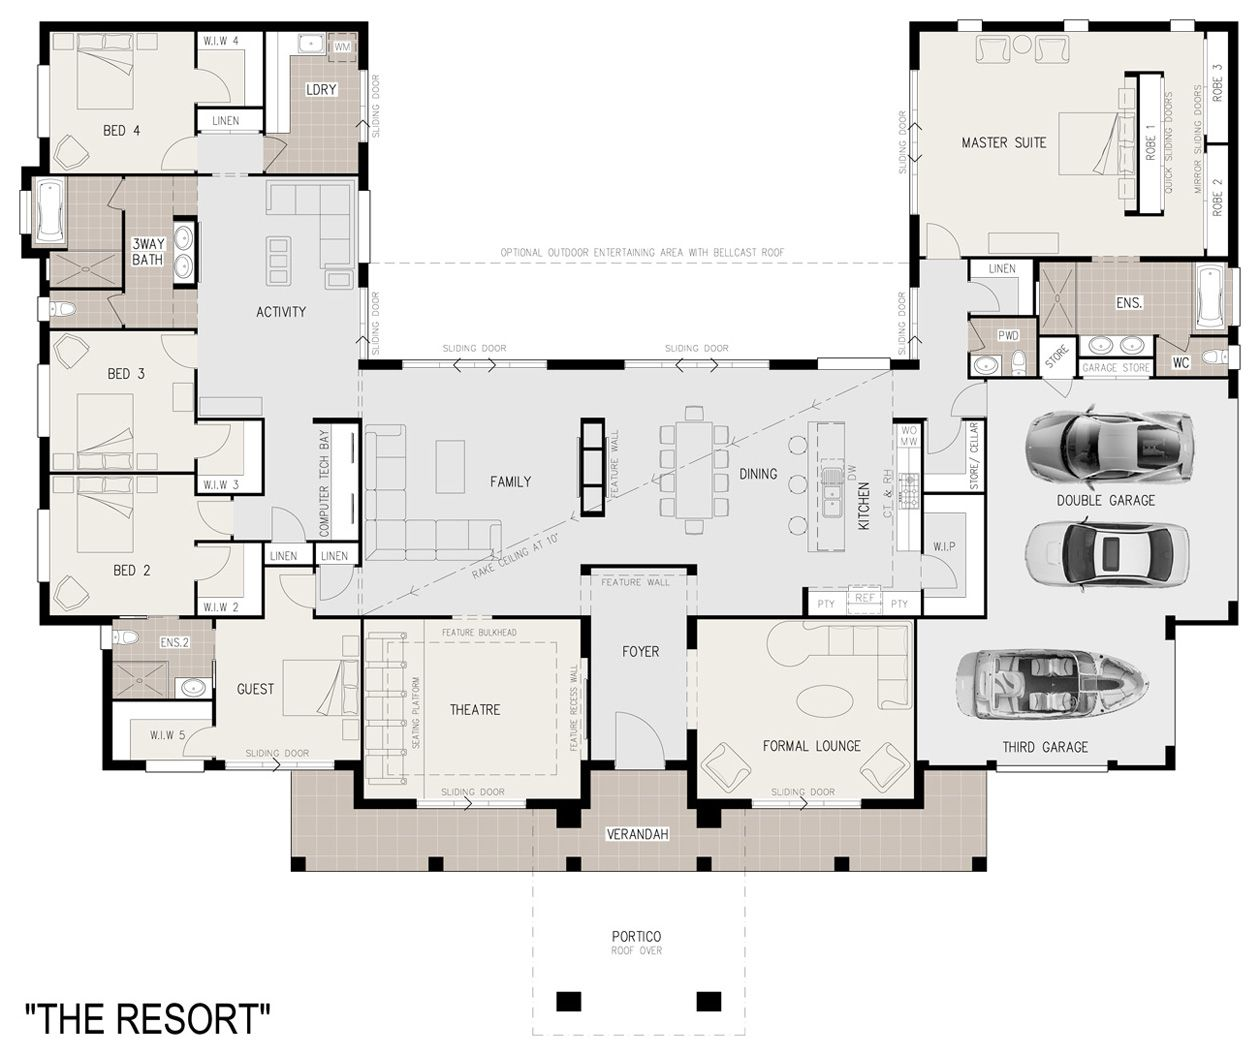 House plan with furniture - Floor Plan Furniture Floor Coverings And Landscaping Not Included